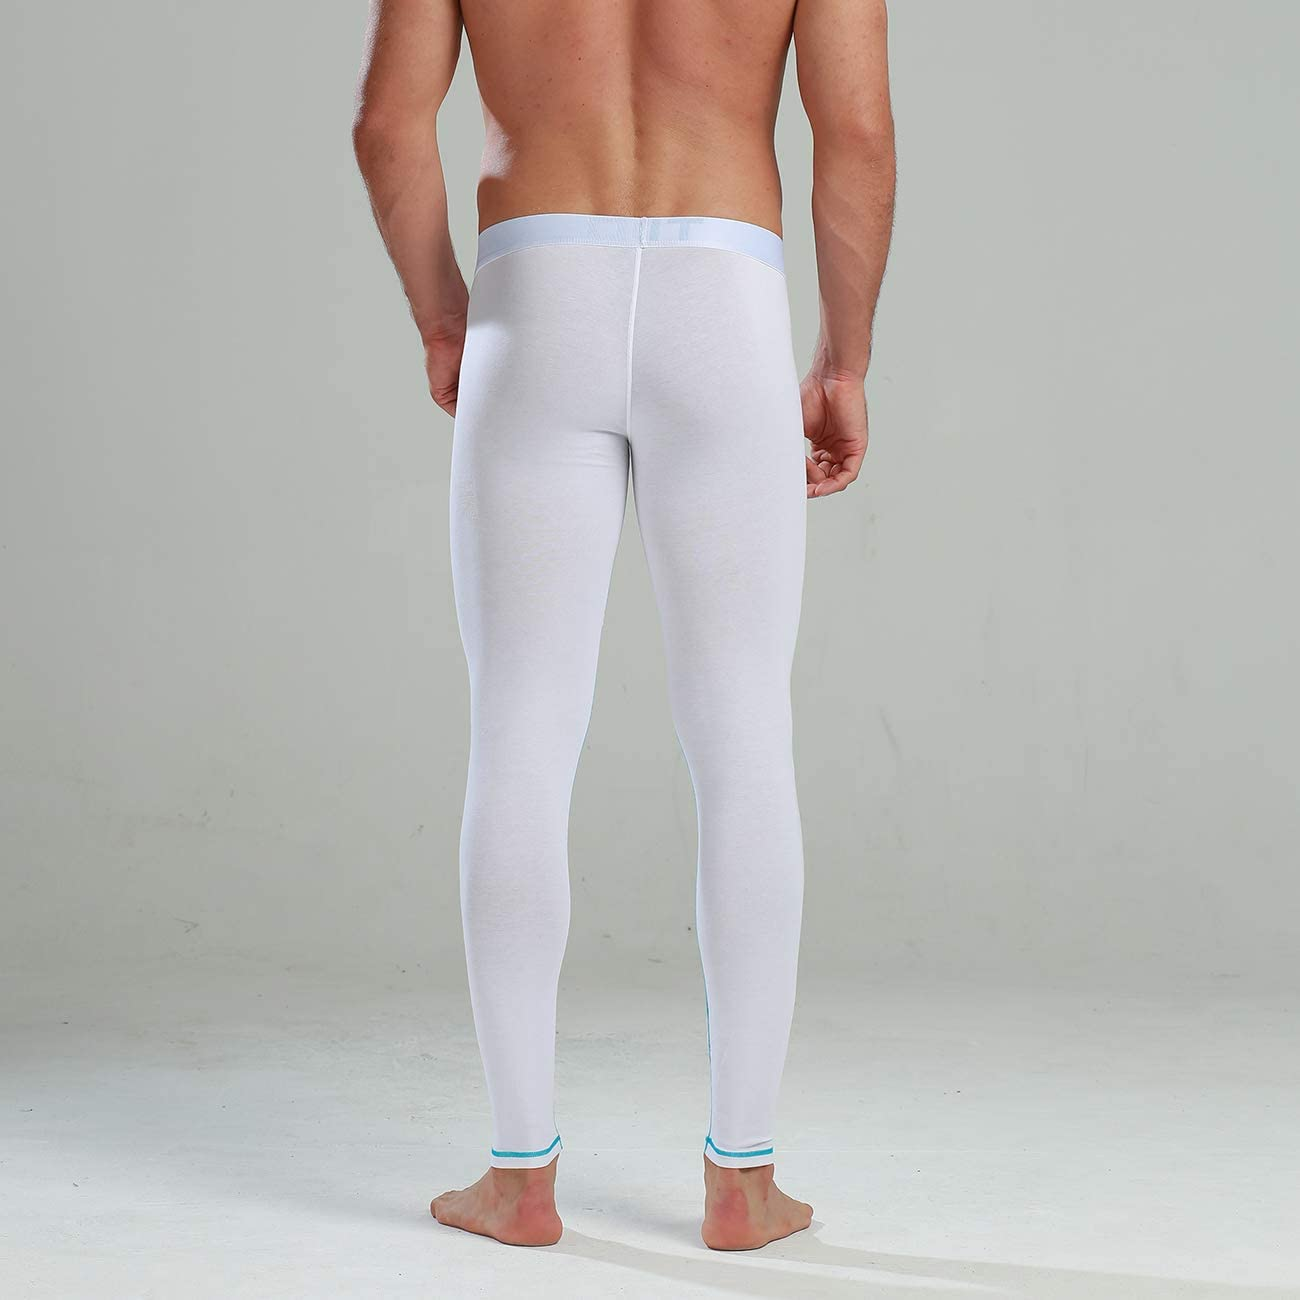 GOGOHOT Mens Thin Pouch Modal/&Cotton Long Underwear Long Johns